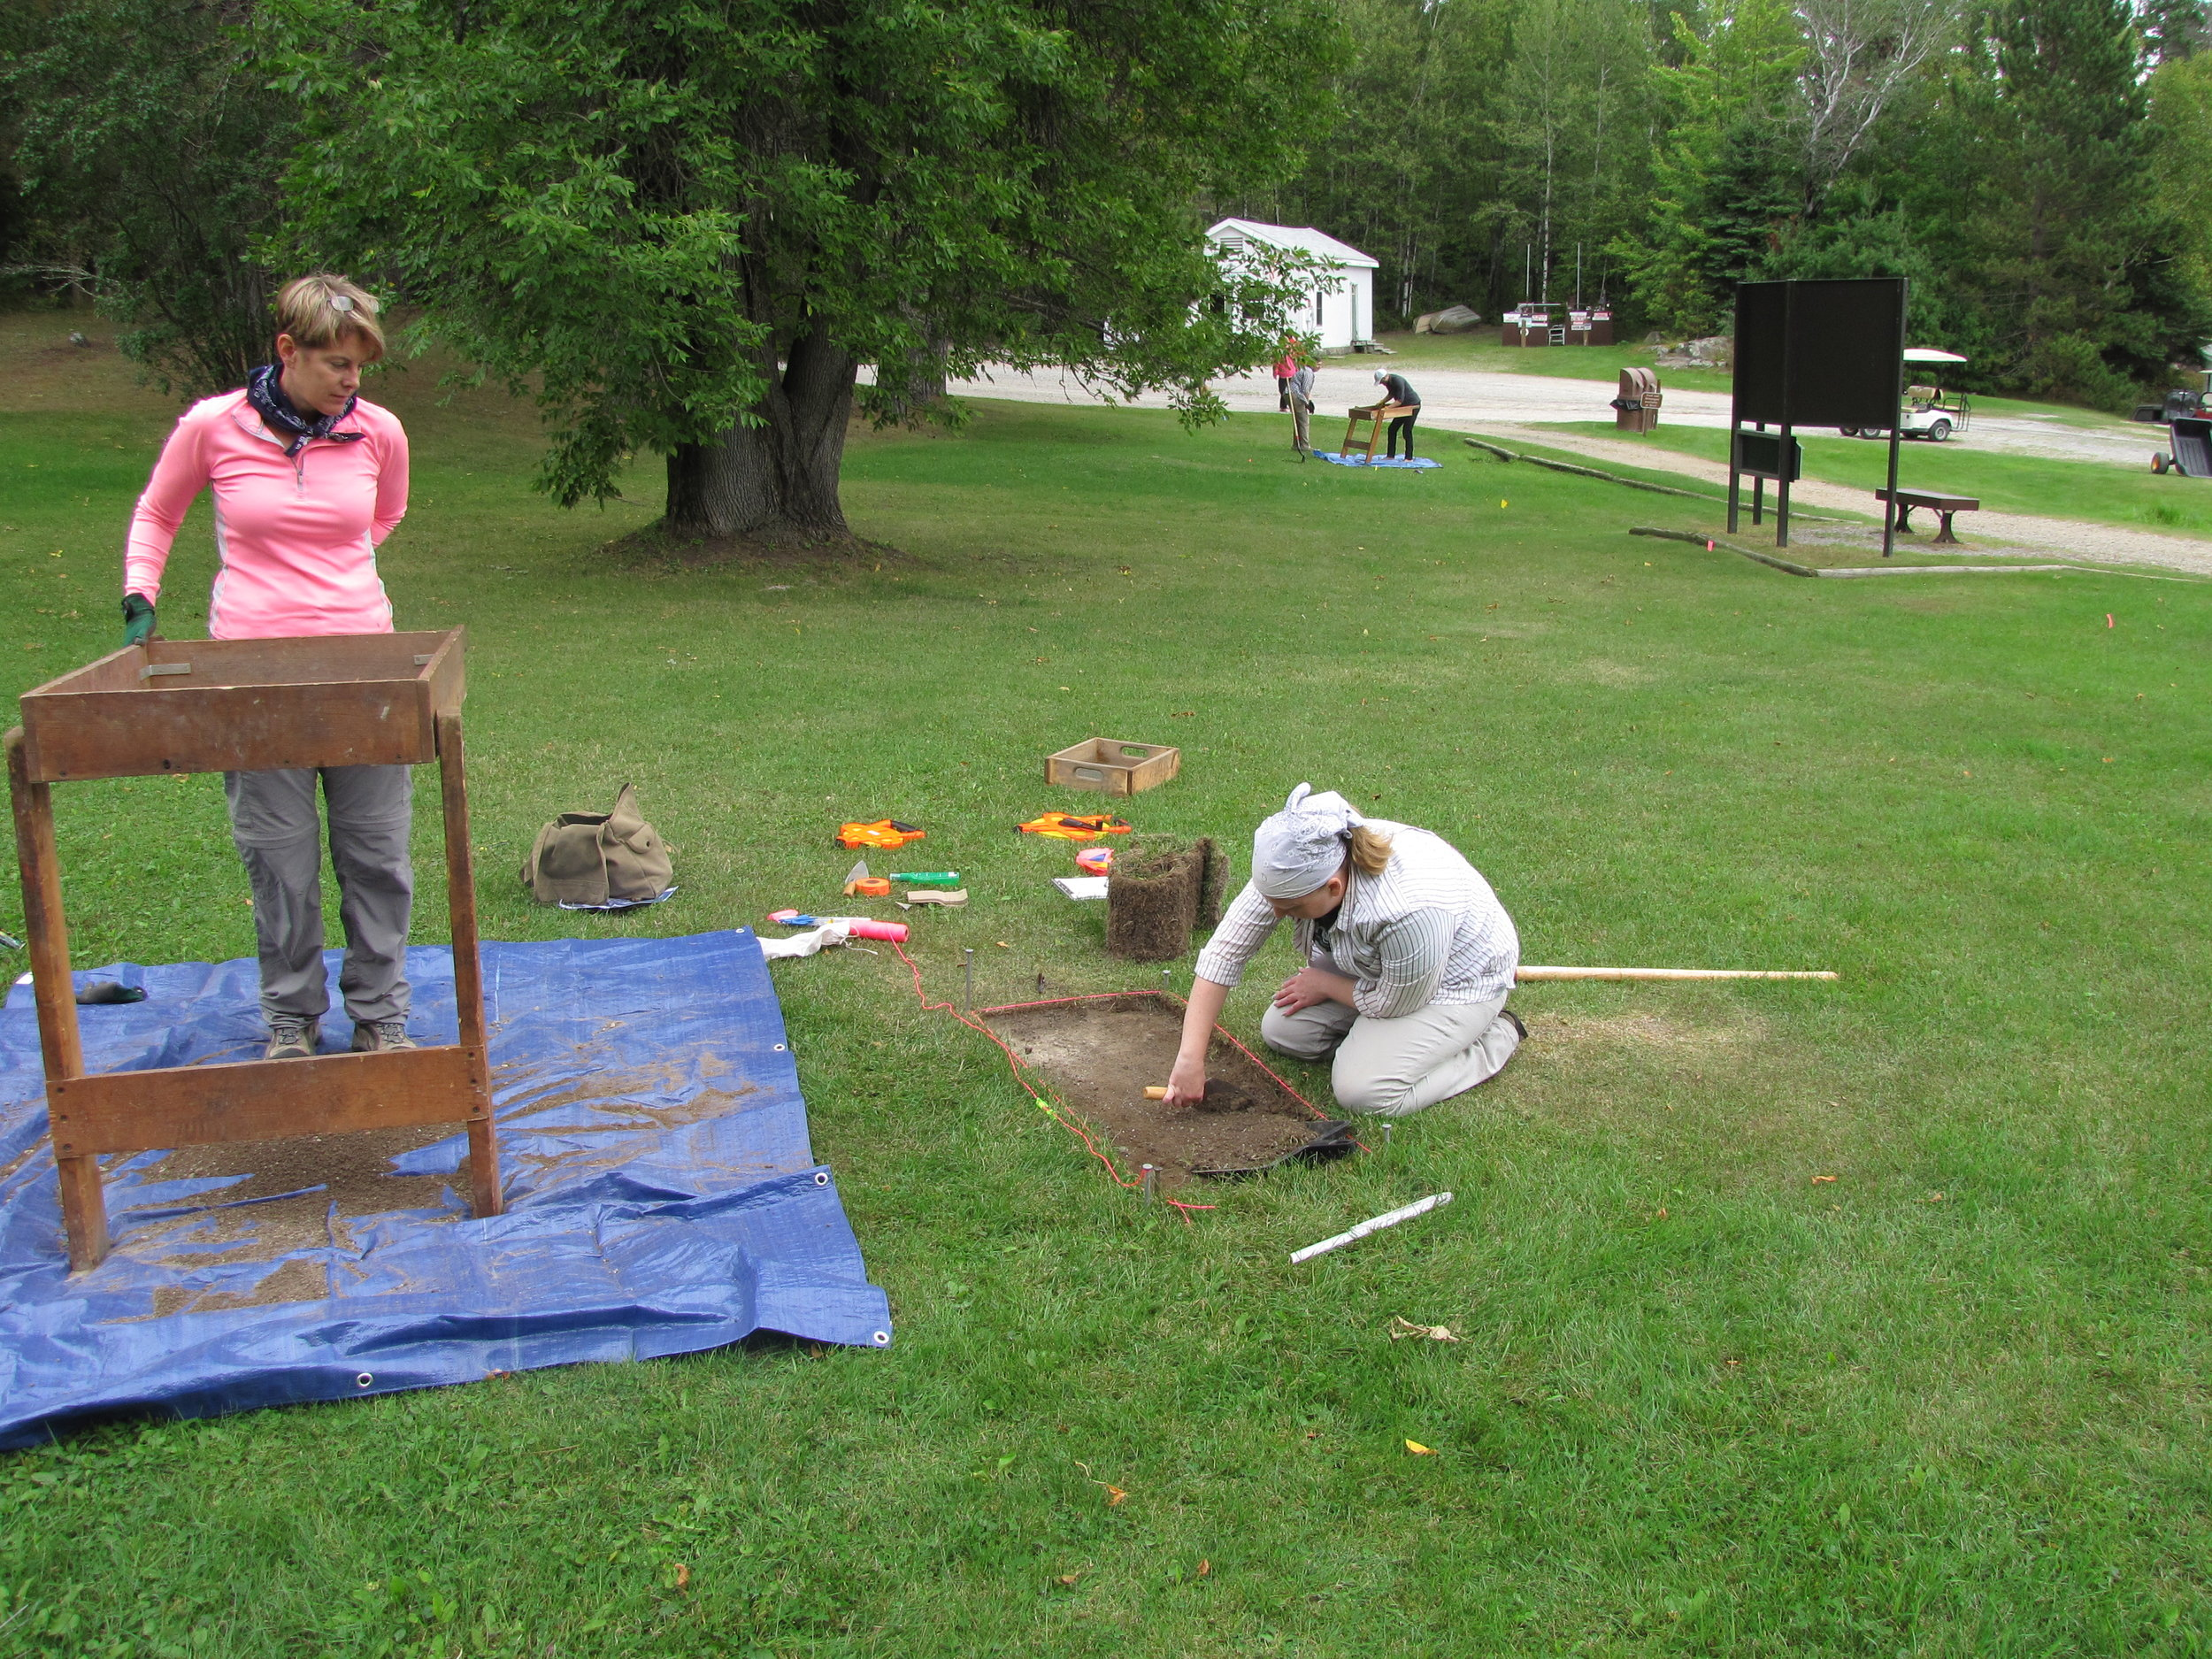 NPS Archeologists from Lincoln, Nebraska carefully excavate layers of soil in 2016 to recover any preserved information related to Chris Monson's trading post. One Test Unit is in the foreground; a second Test Unit can be seen in the background.